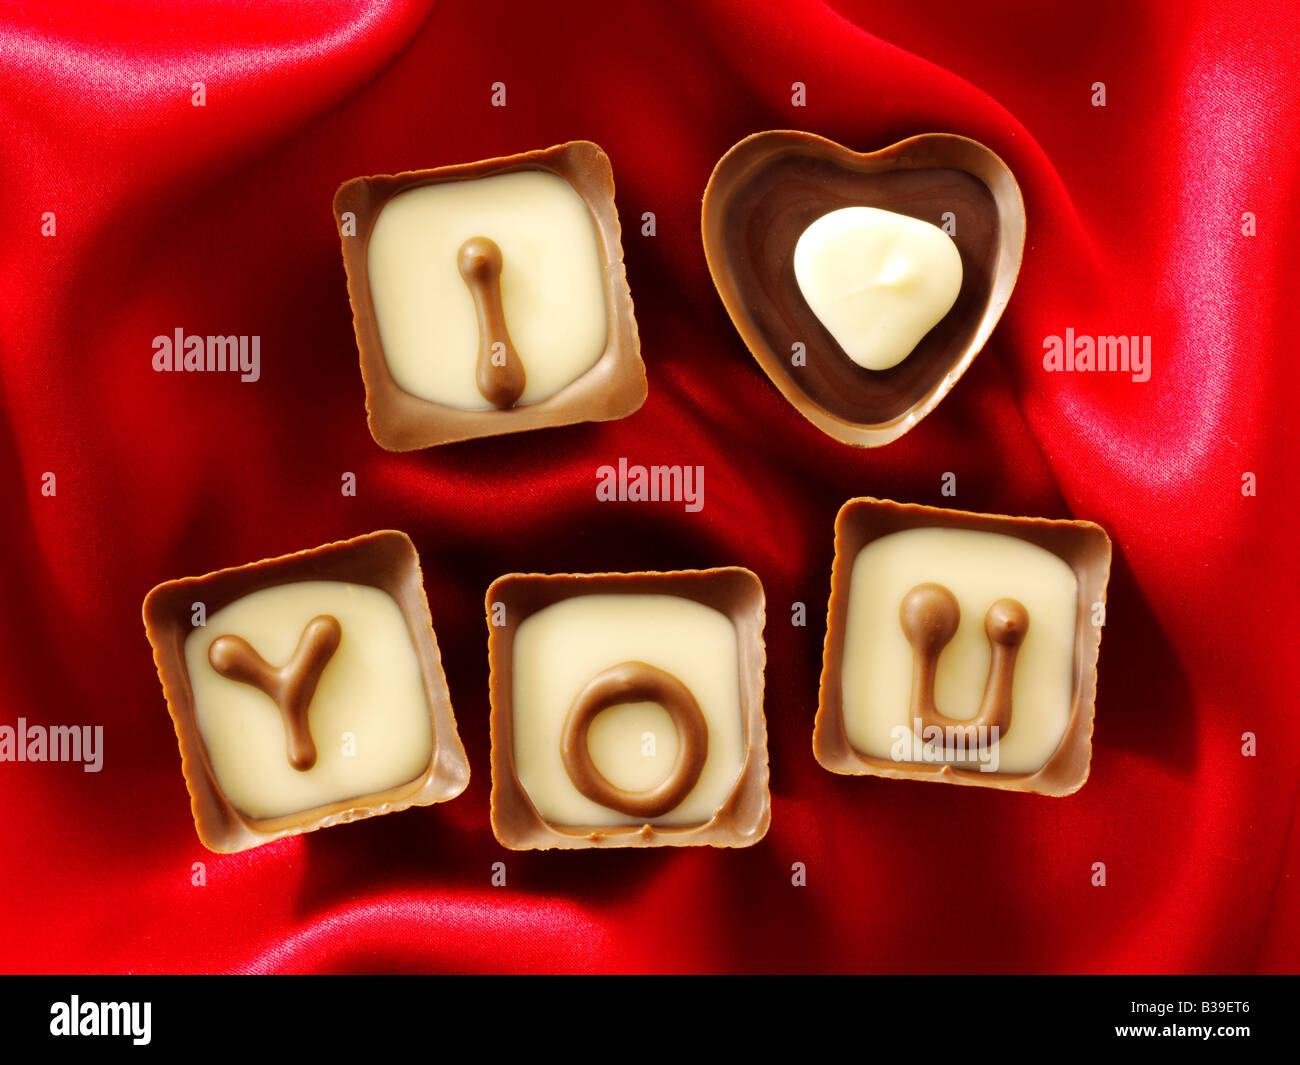 I Love You written in chocolates with red heart shaped chocolates. - Stock Image